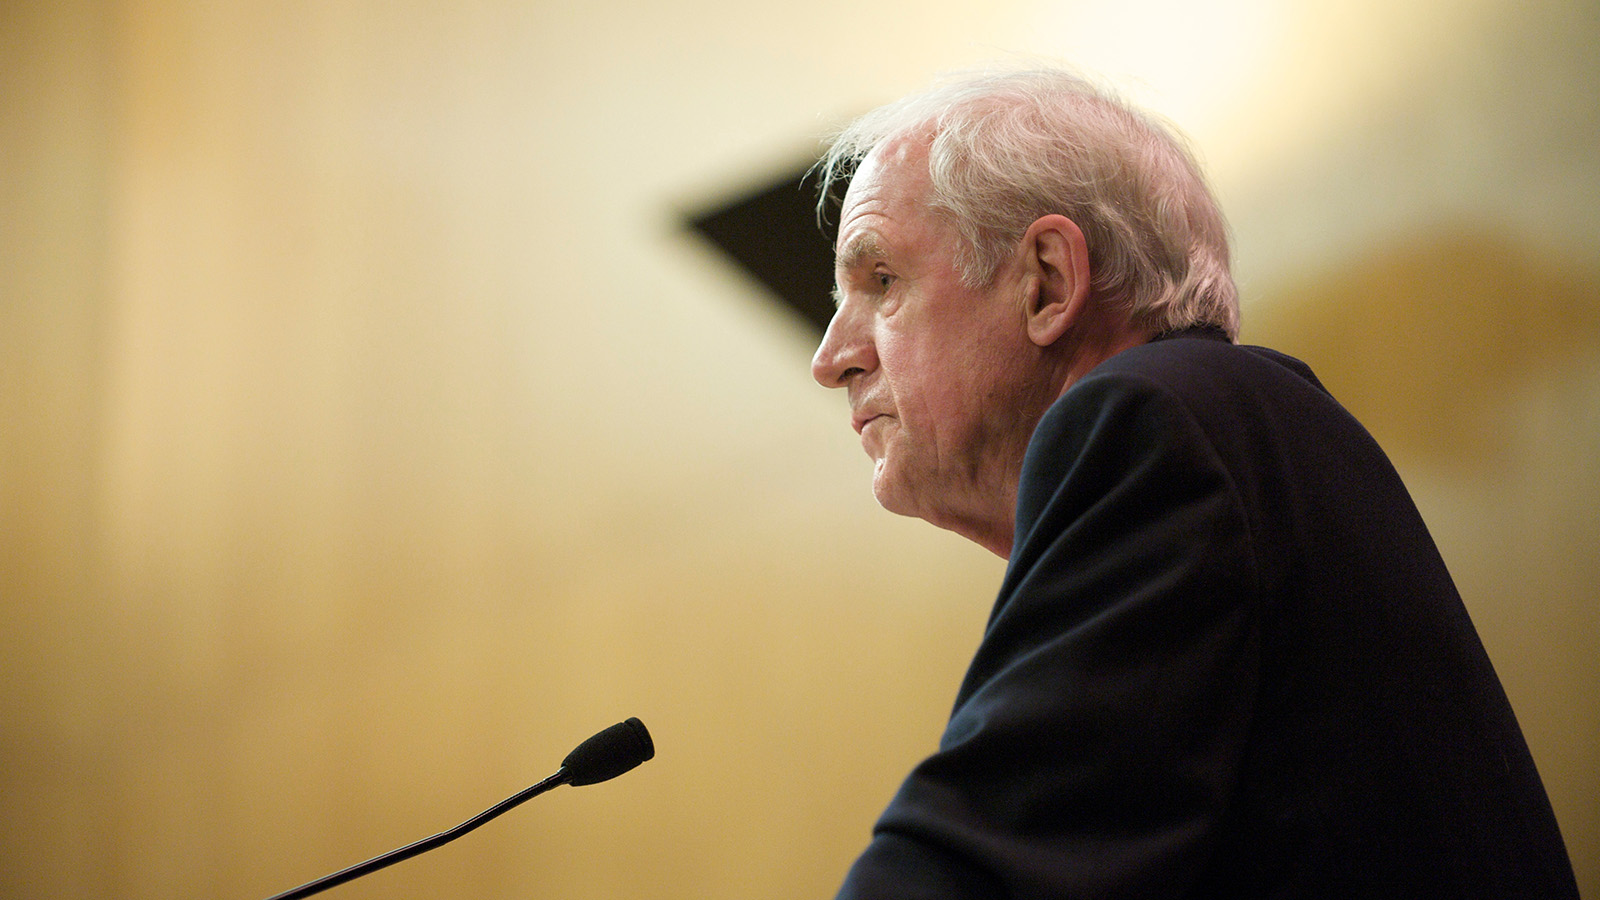 Charles Taylor lectures on secularism and globalization.